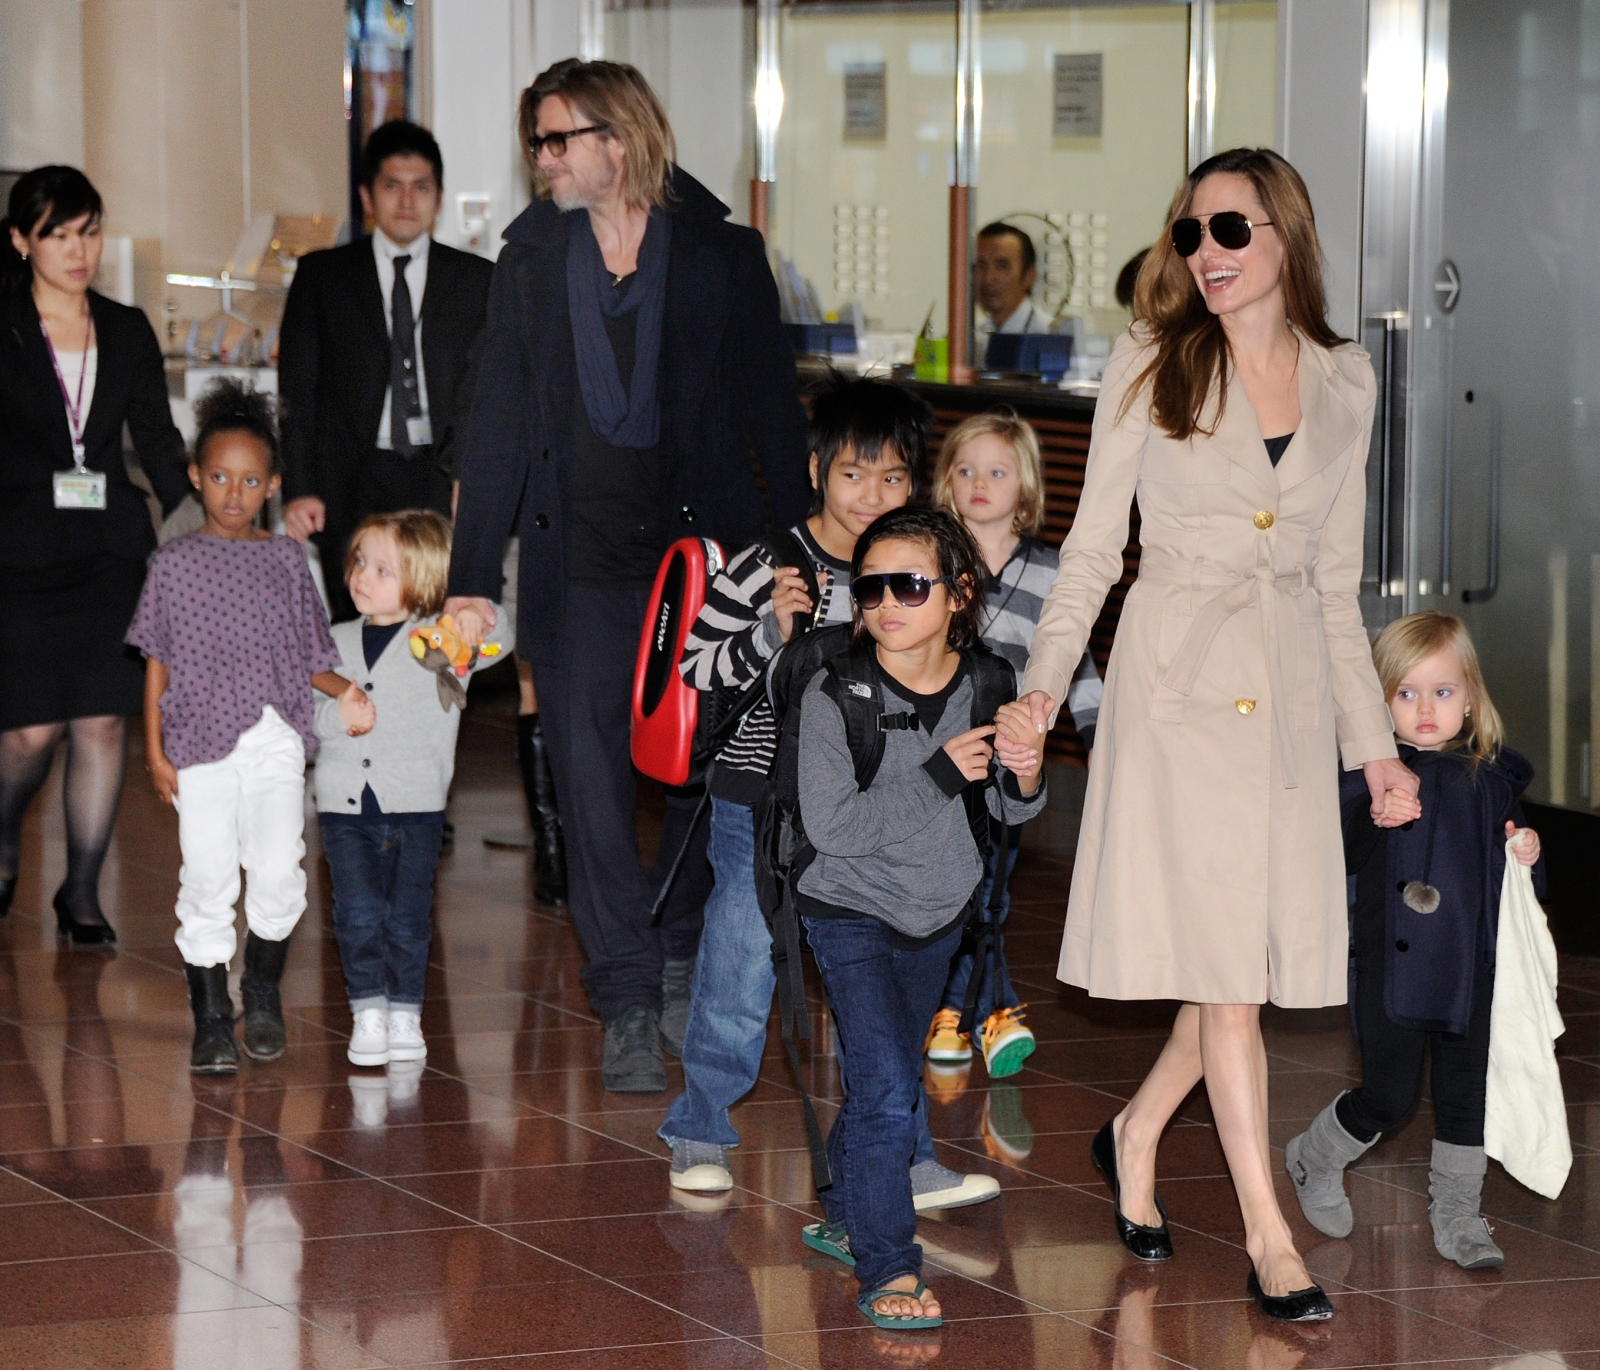 Brad Pitt, Angelina Jolie and their children